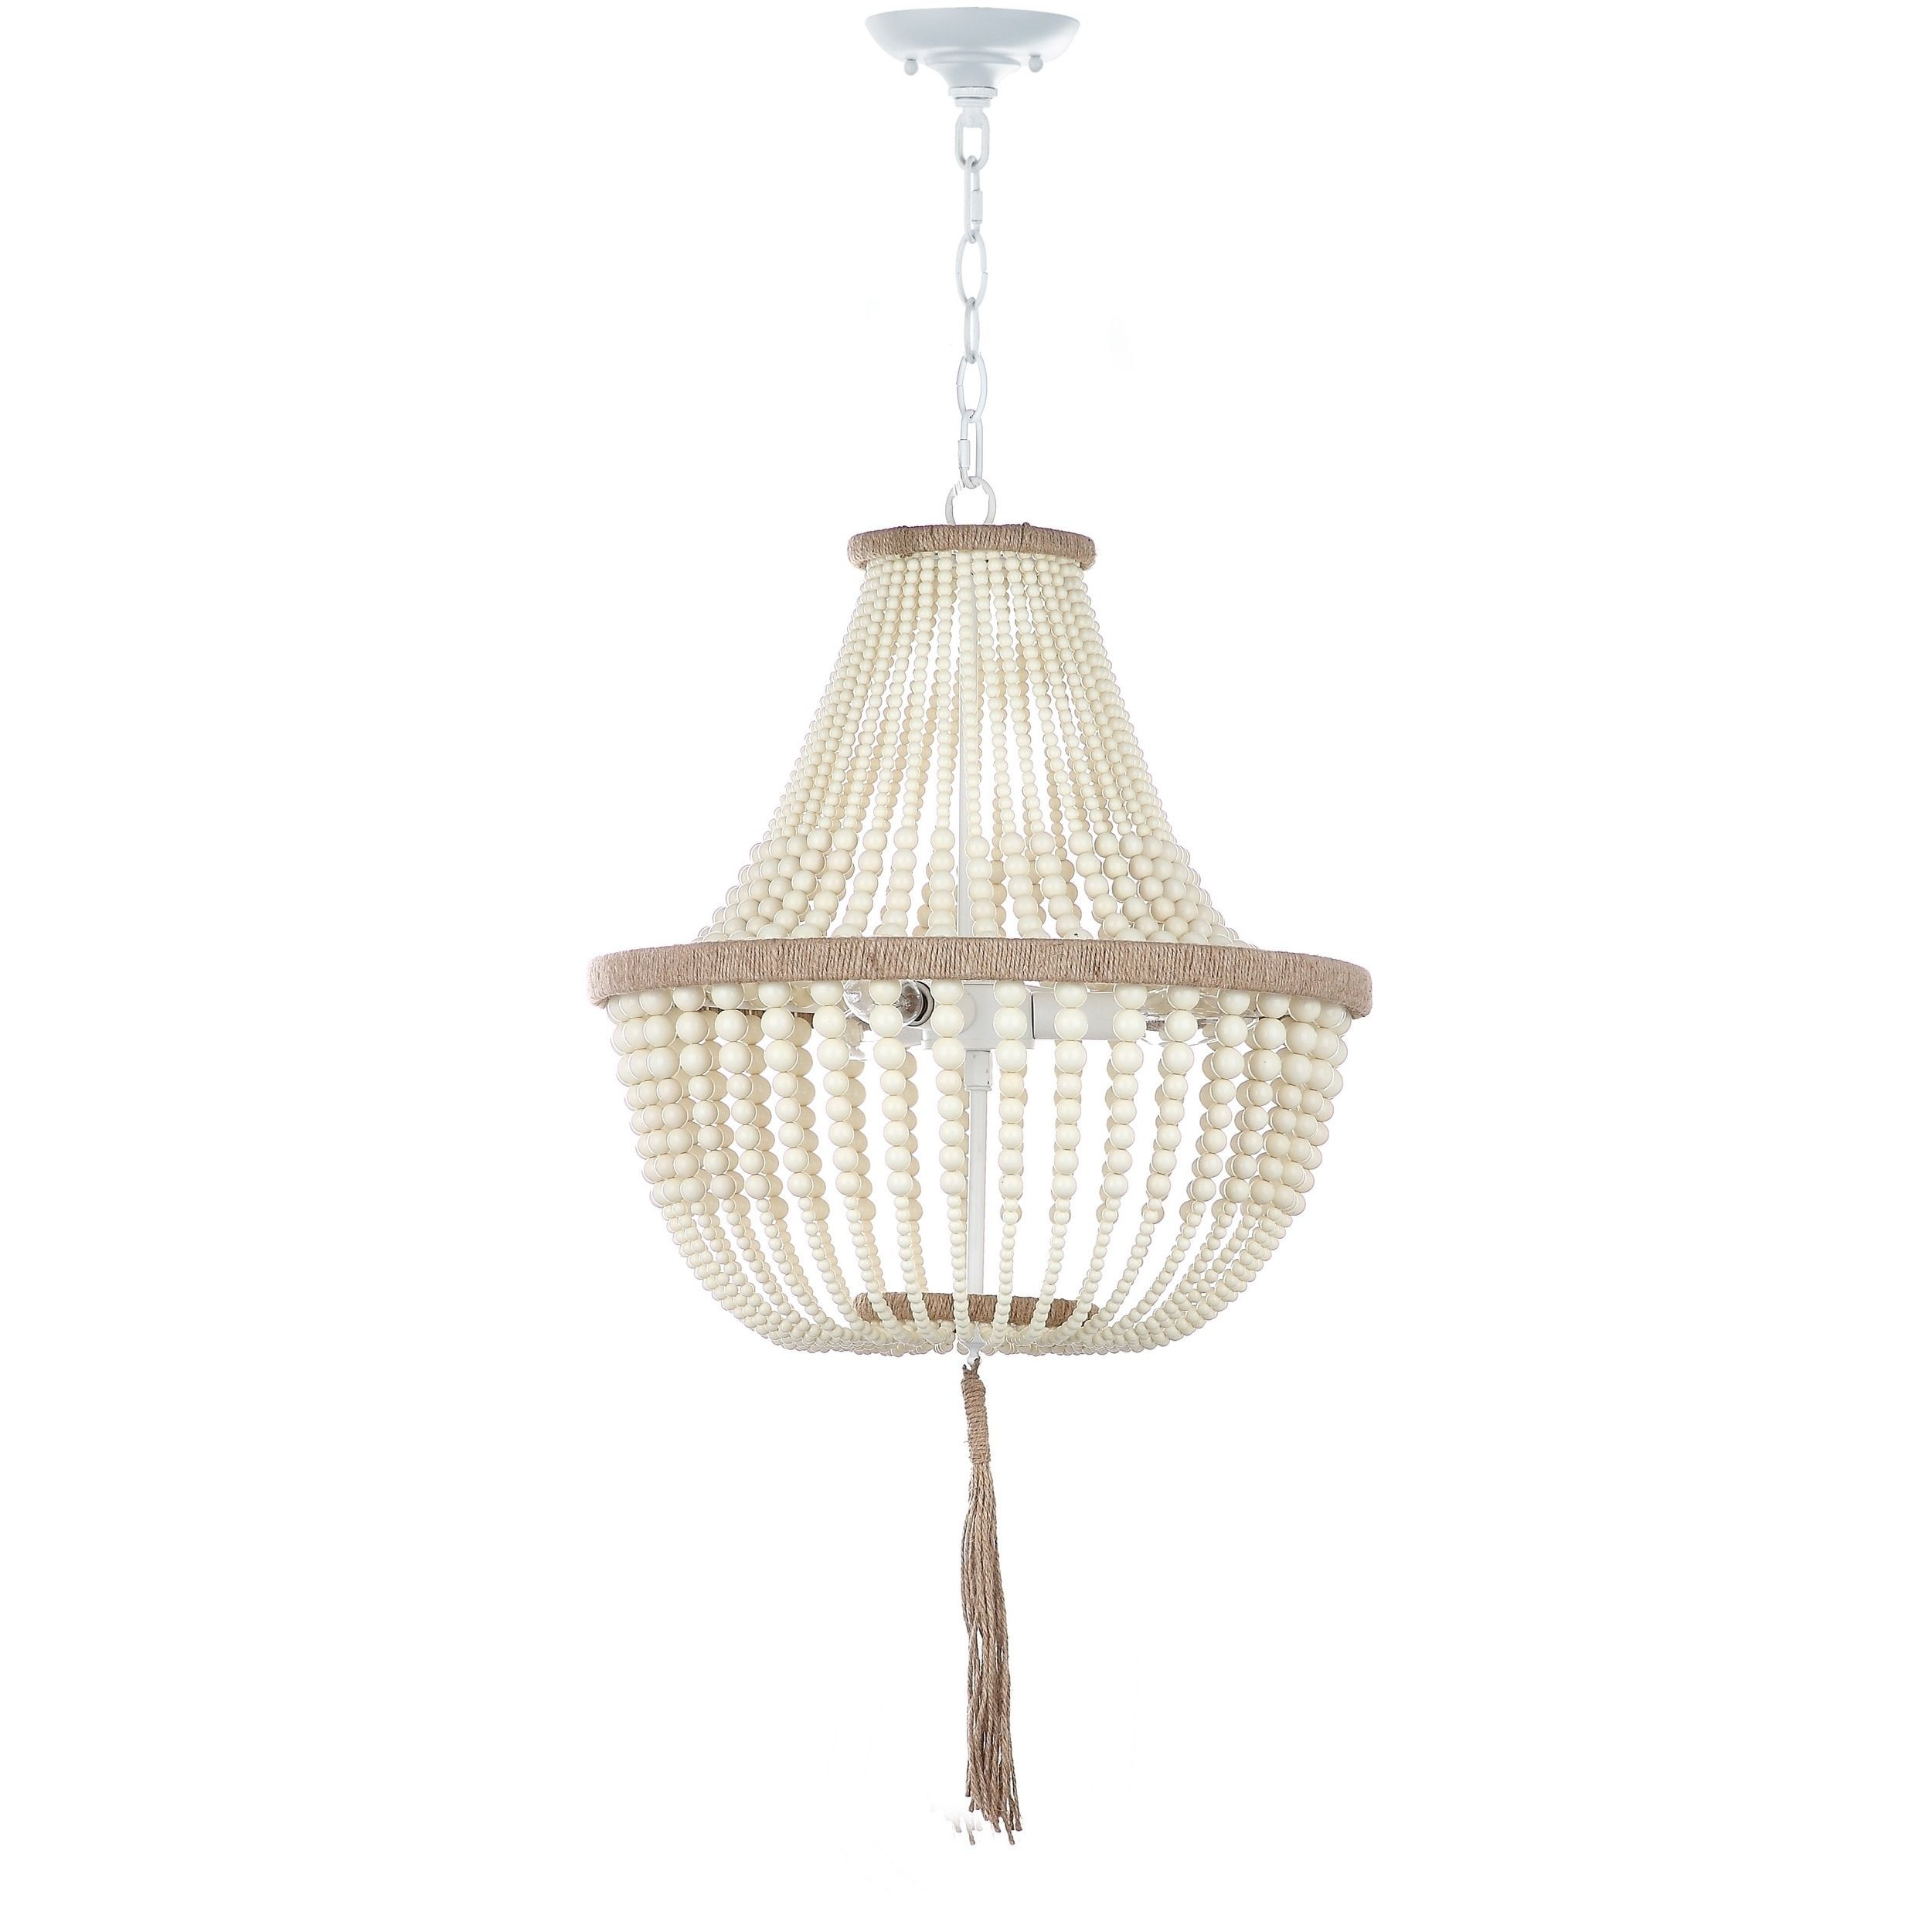 Safavieh lush kristi 3 light 165 inch dia cream beaded pendant overstock online shopping bedding furniture electronics jewelry clothing more arubaitofo Choice Image